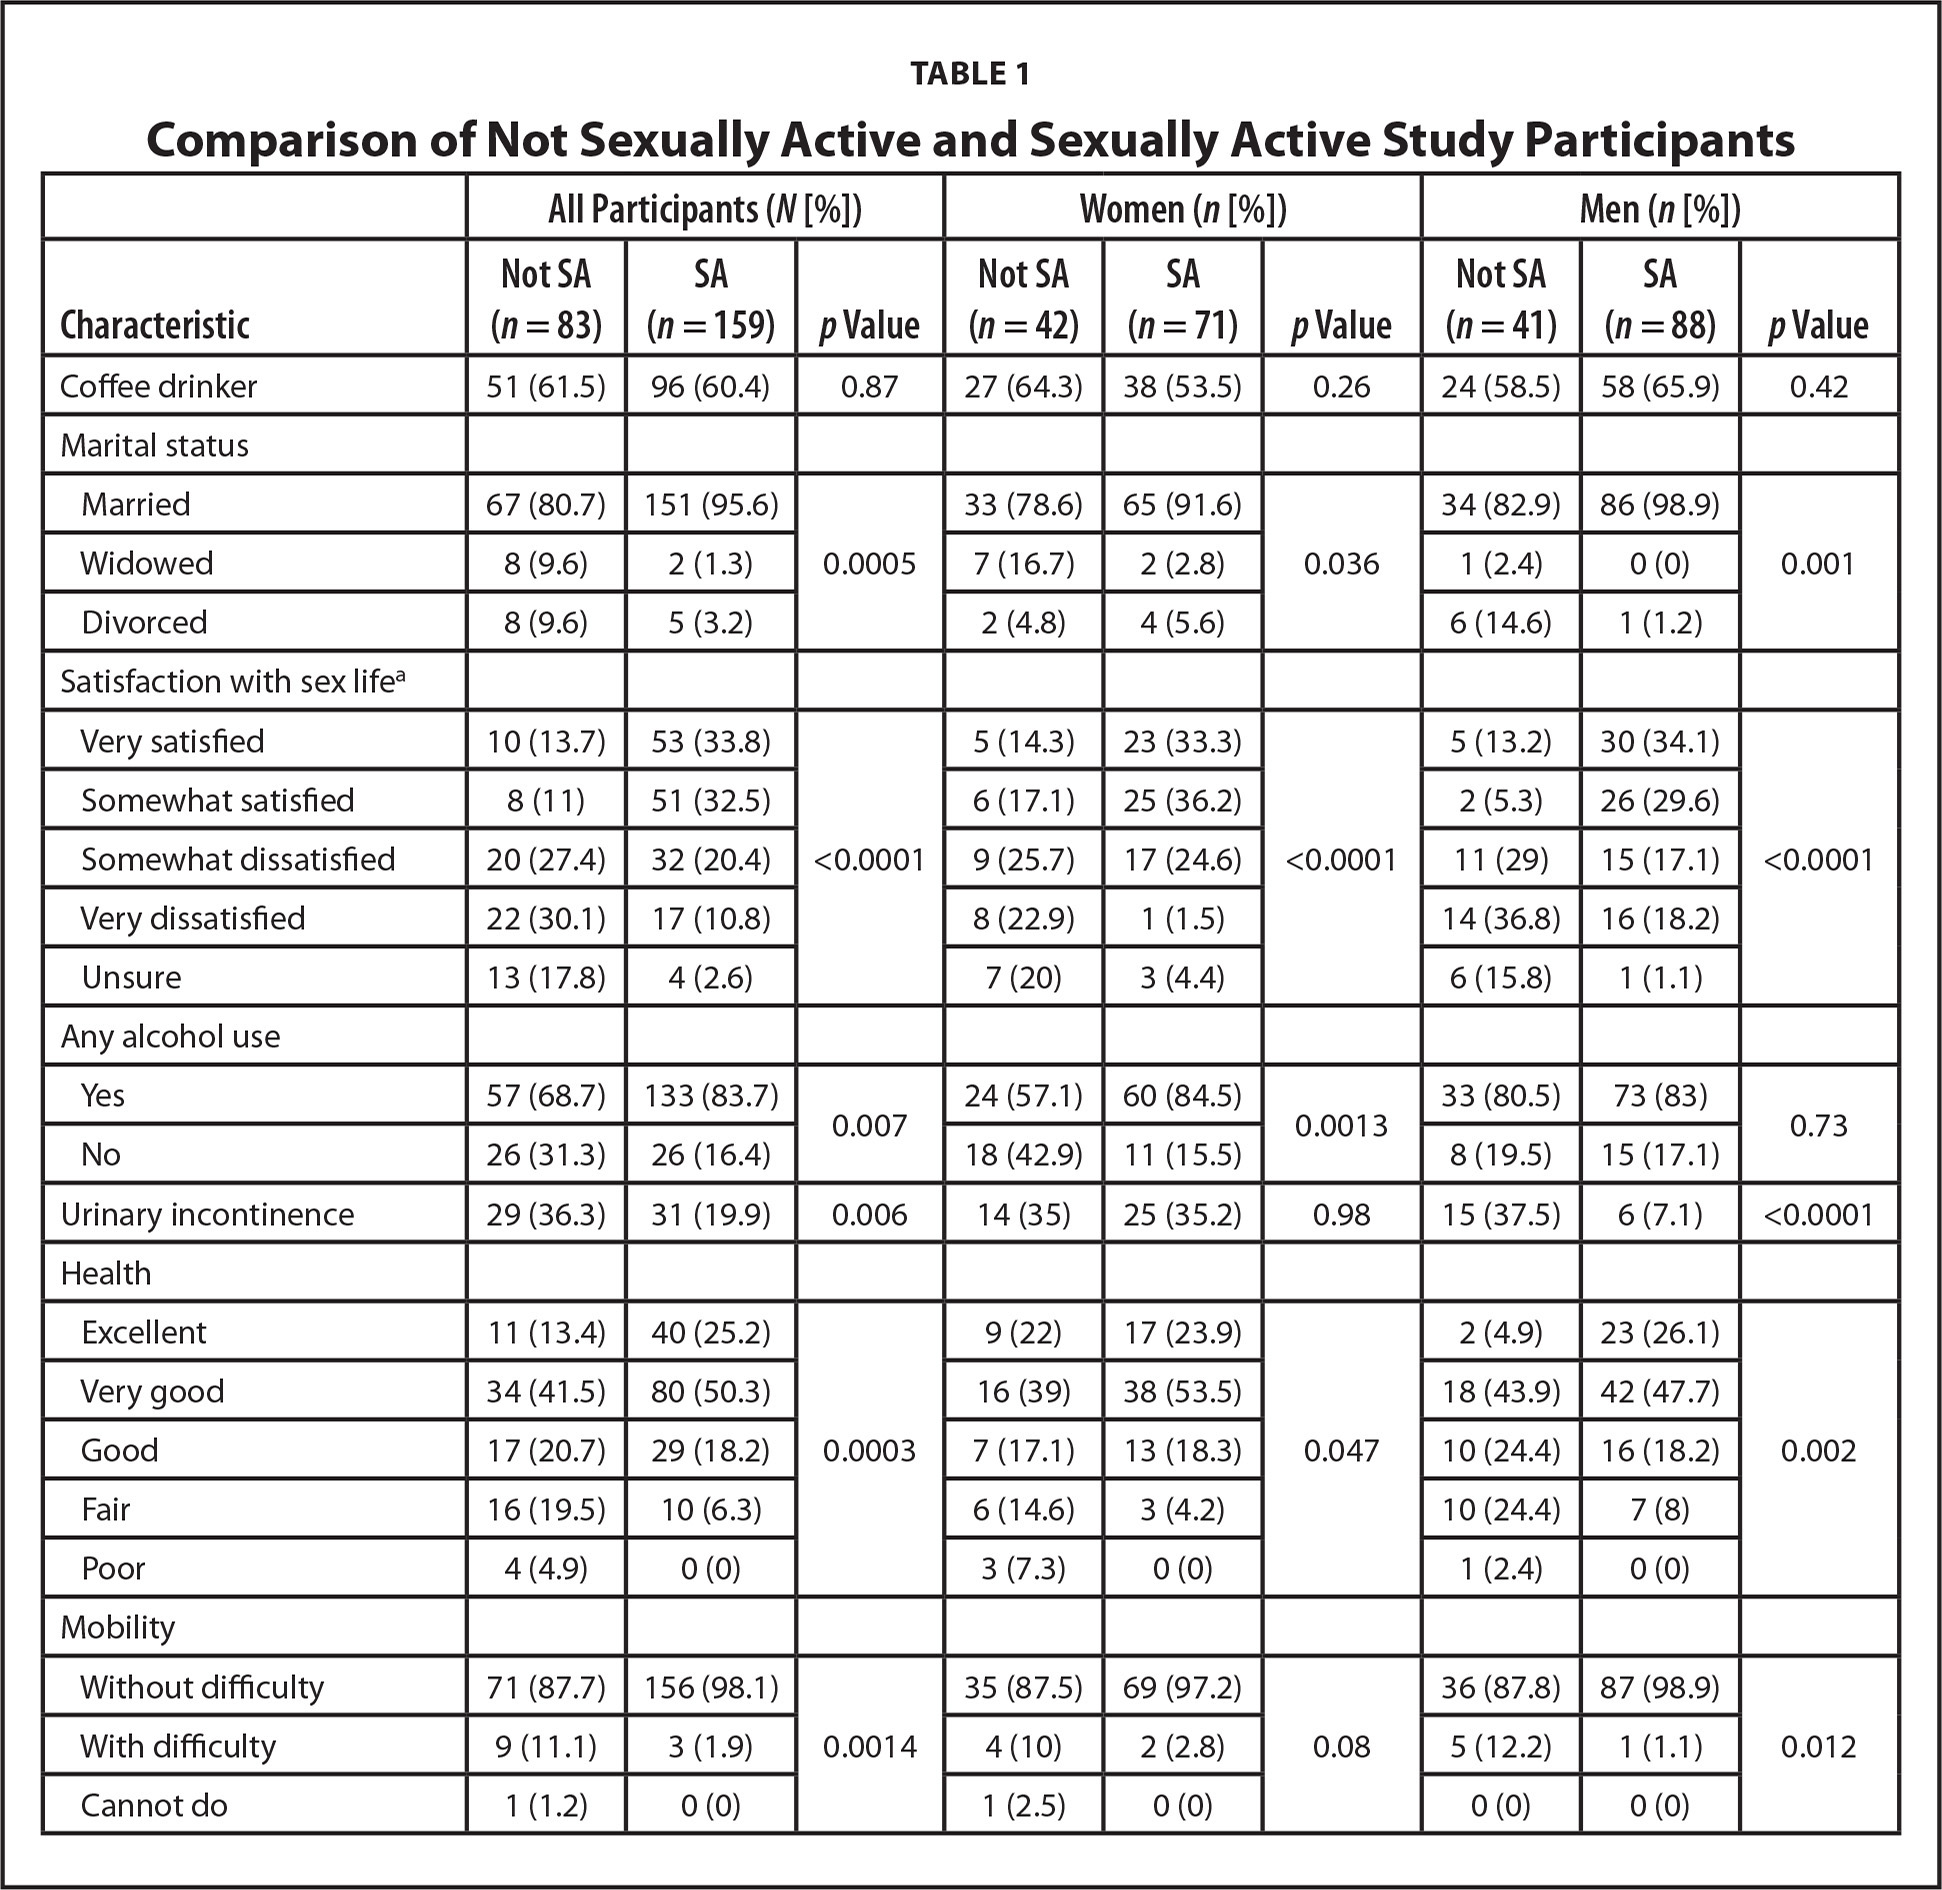 Comparison of Not Sexually Active and Sexually Active Study Participants